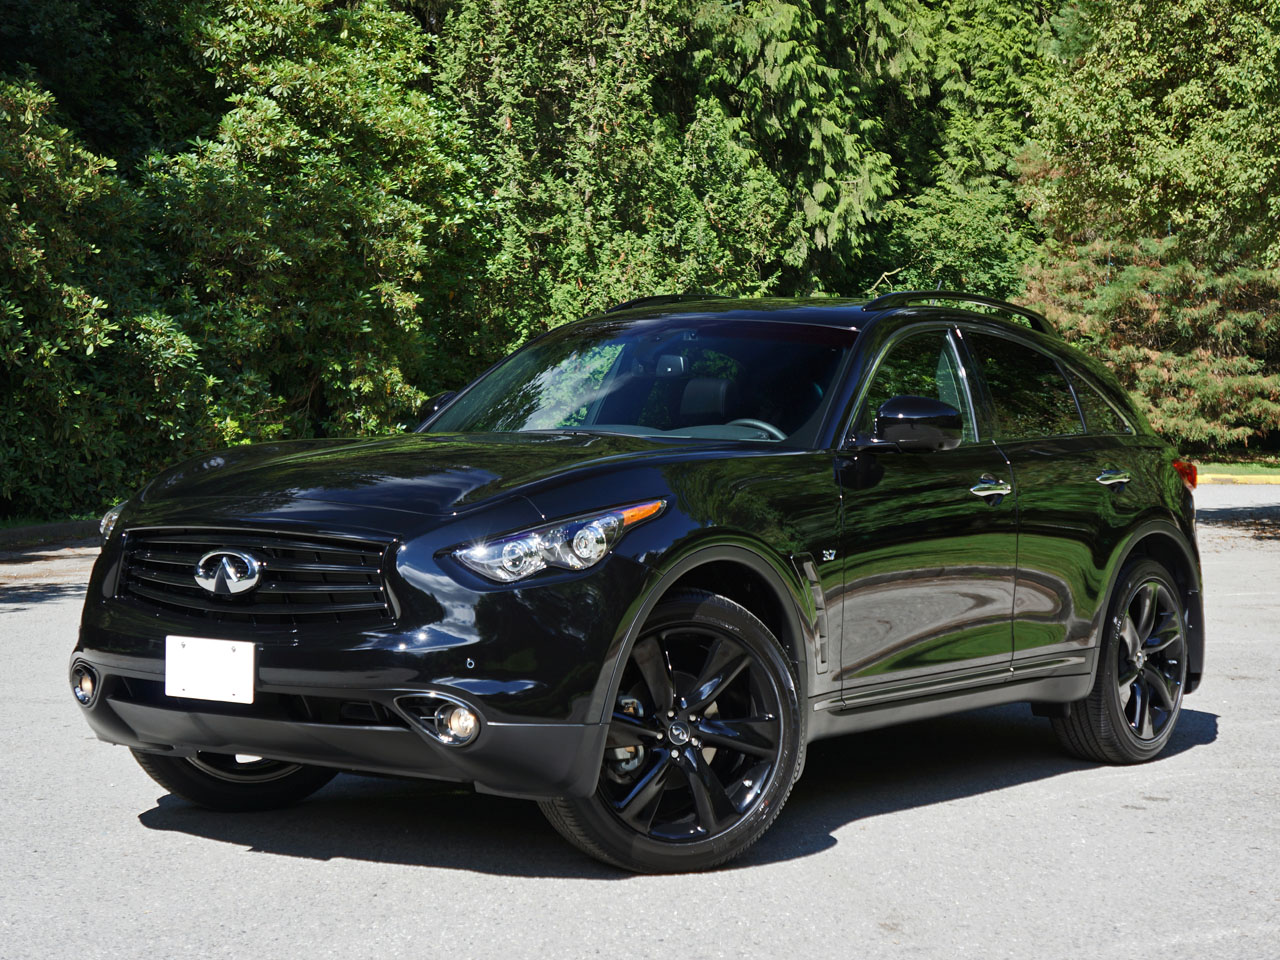 Black Qx70 >> 2015 Infiniti QX70 Sport Road Test Review | CarCostCanada